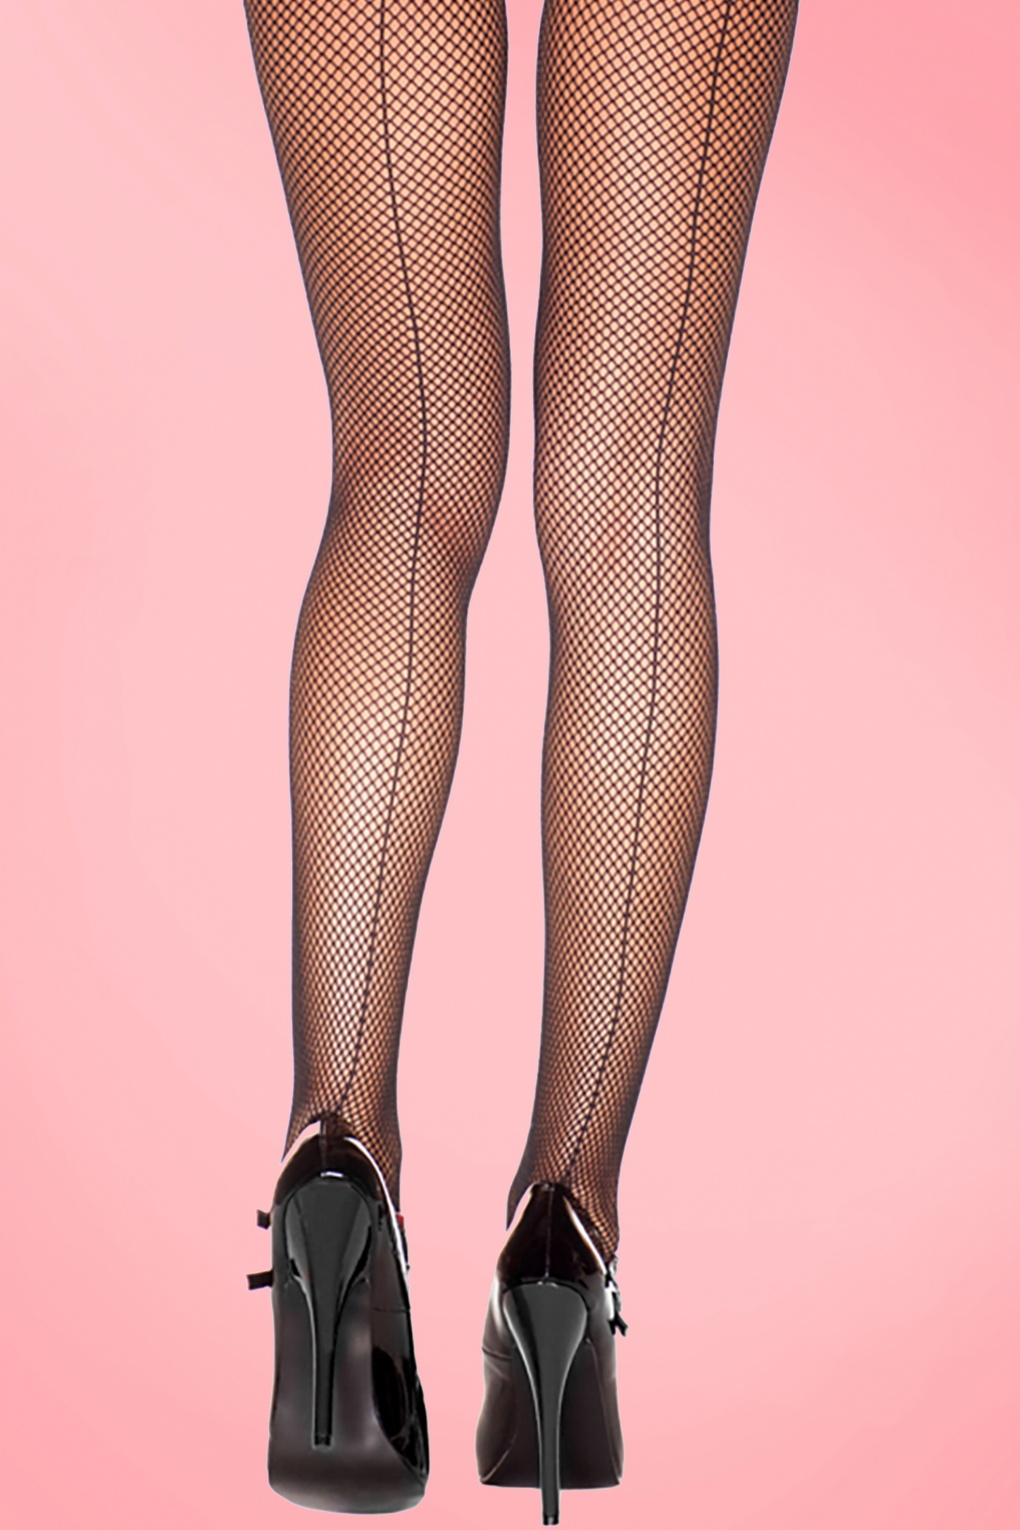 1950s Stockings and Nylons History & Shopping Guide 50s Fishnet Back Seam Tights in Black £5.21 AT vintagedancer.com